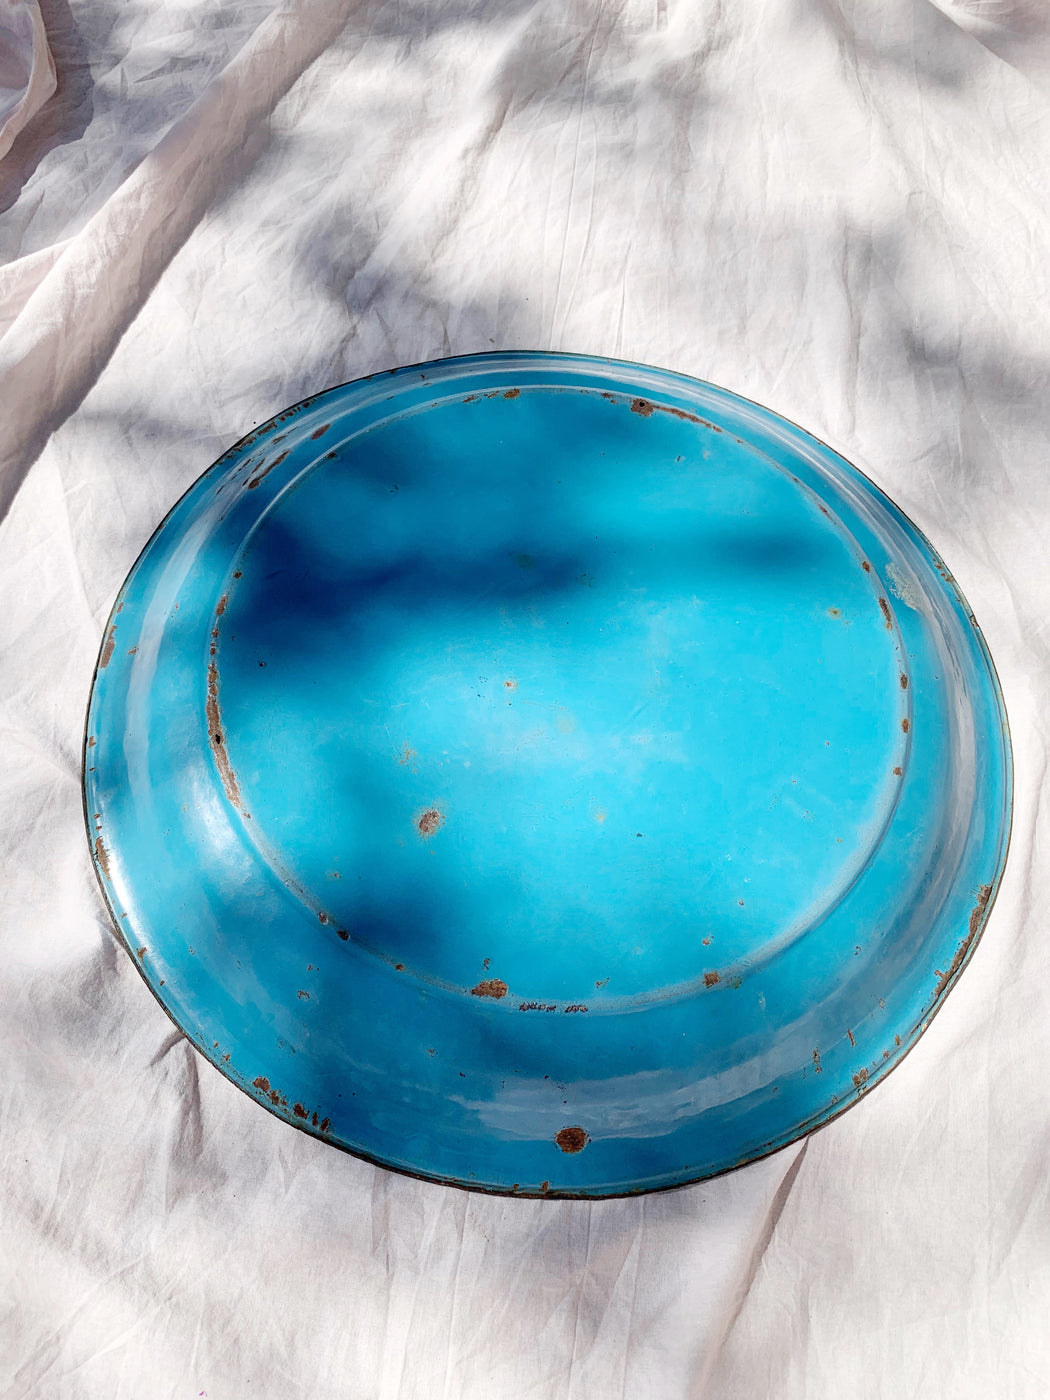 Rustic Blue Enamel Tray with Humming Birds | Storytellers Workshop